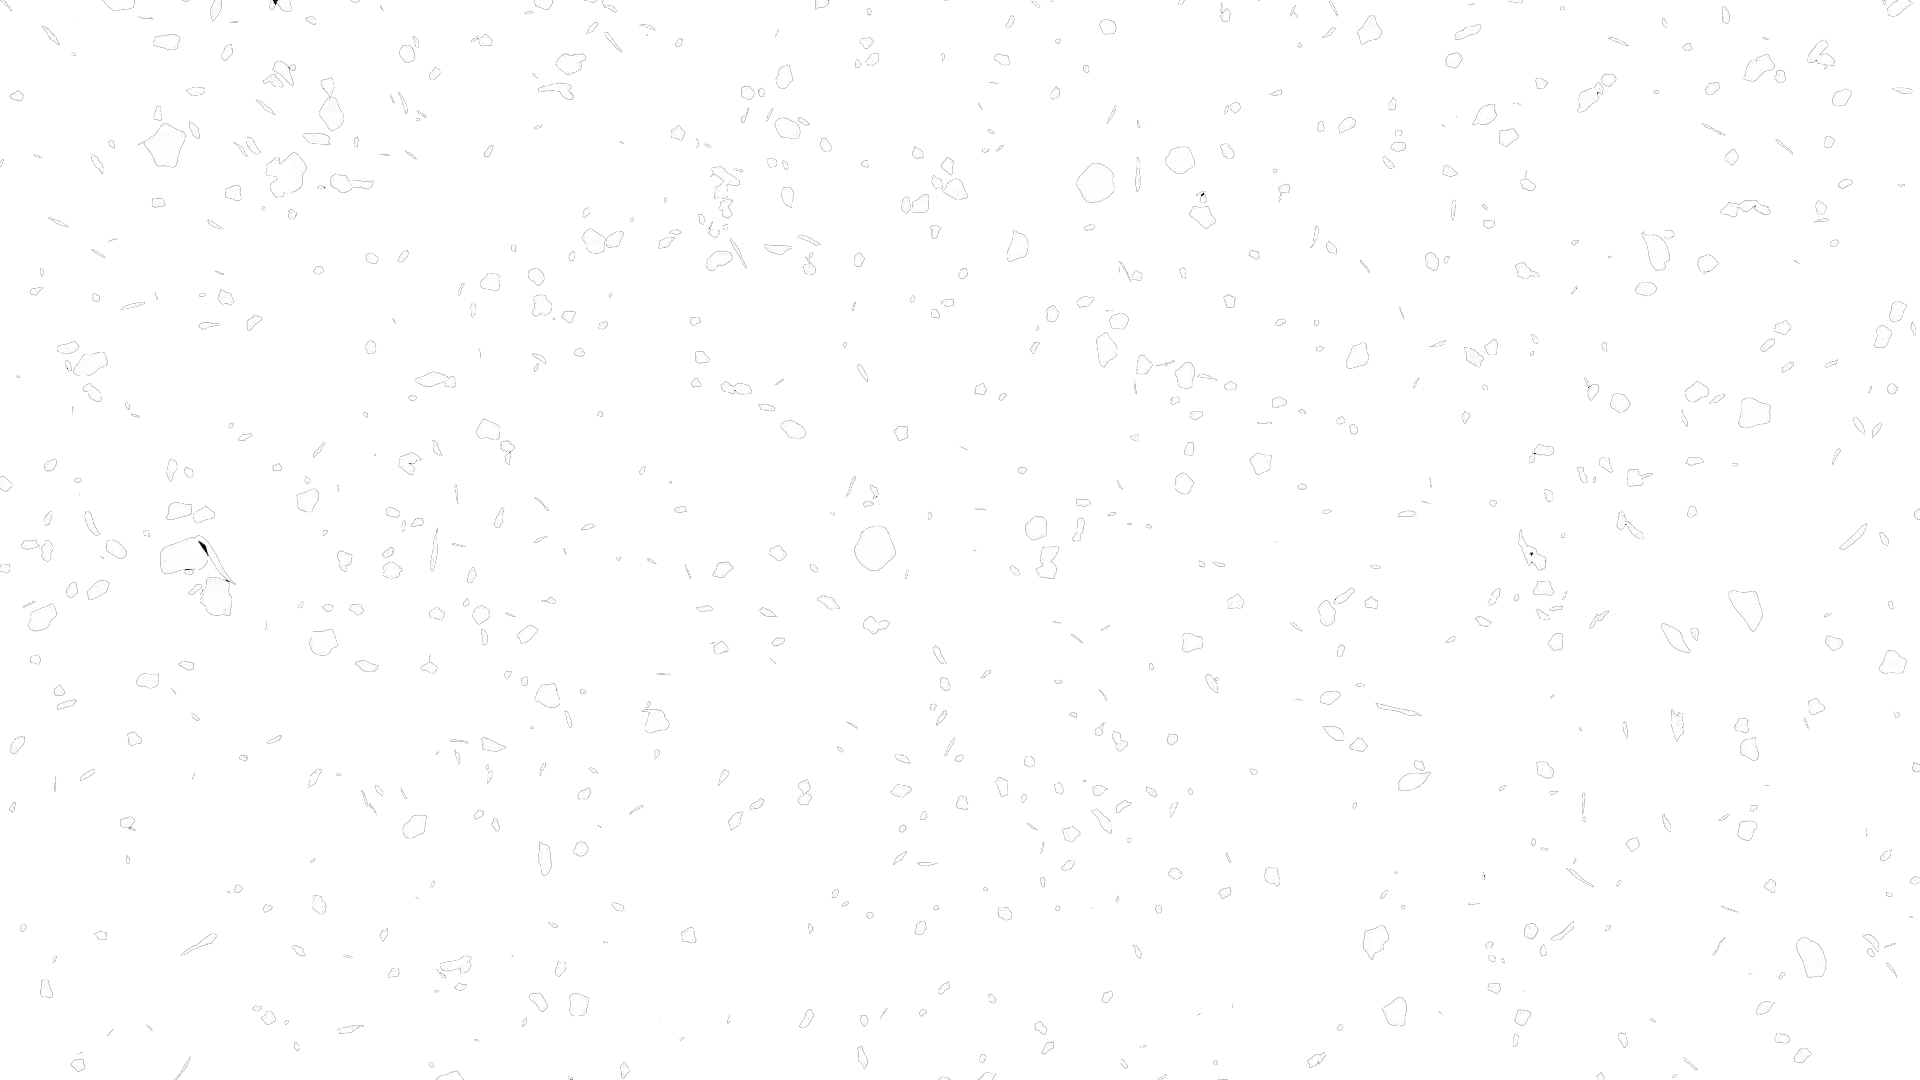 Snow PNG Images Transparent Free Download.